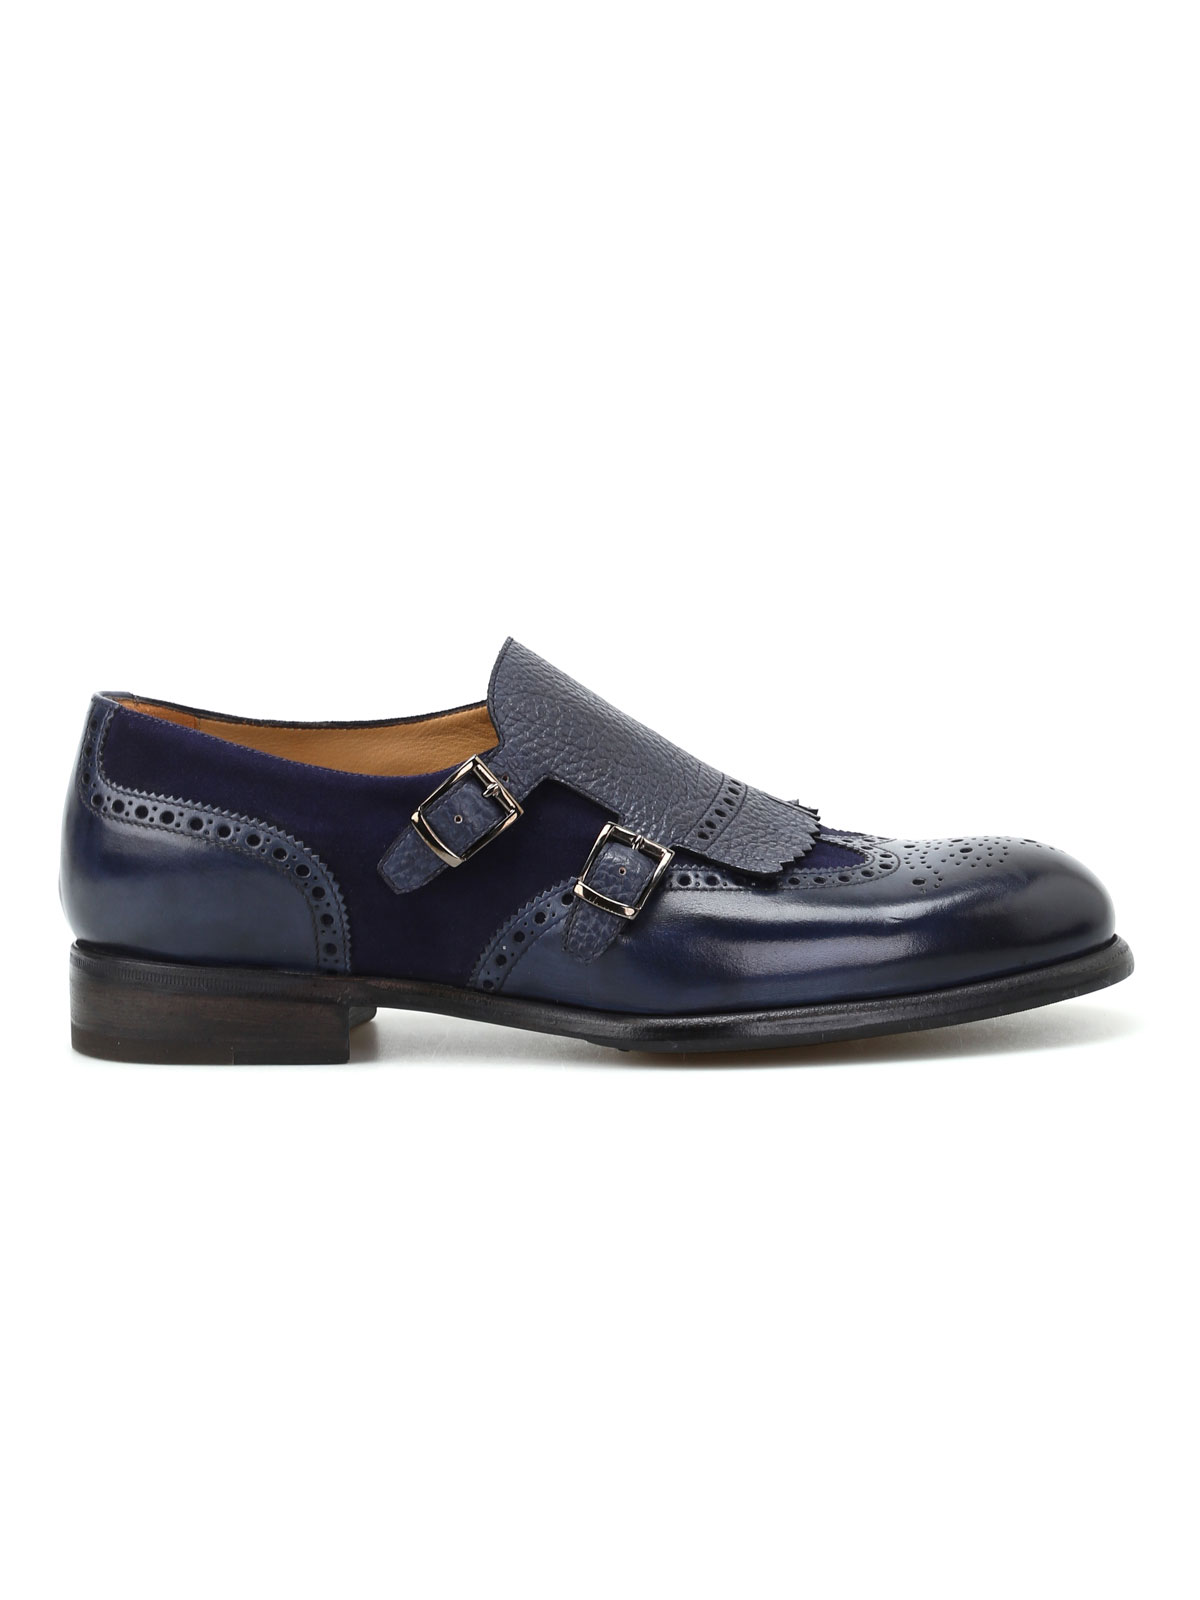 Immagine di BARRETT | FOOTWEAR Monk strap brogue in pelle e suede